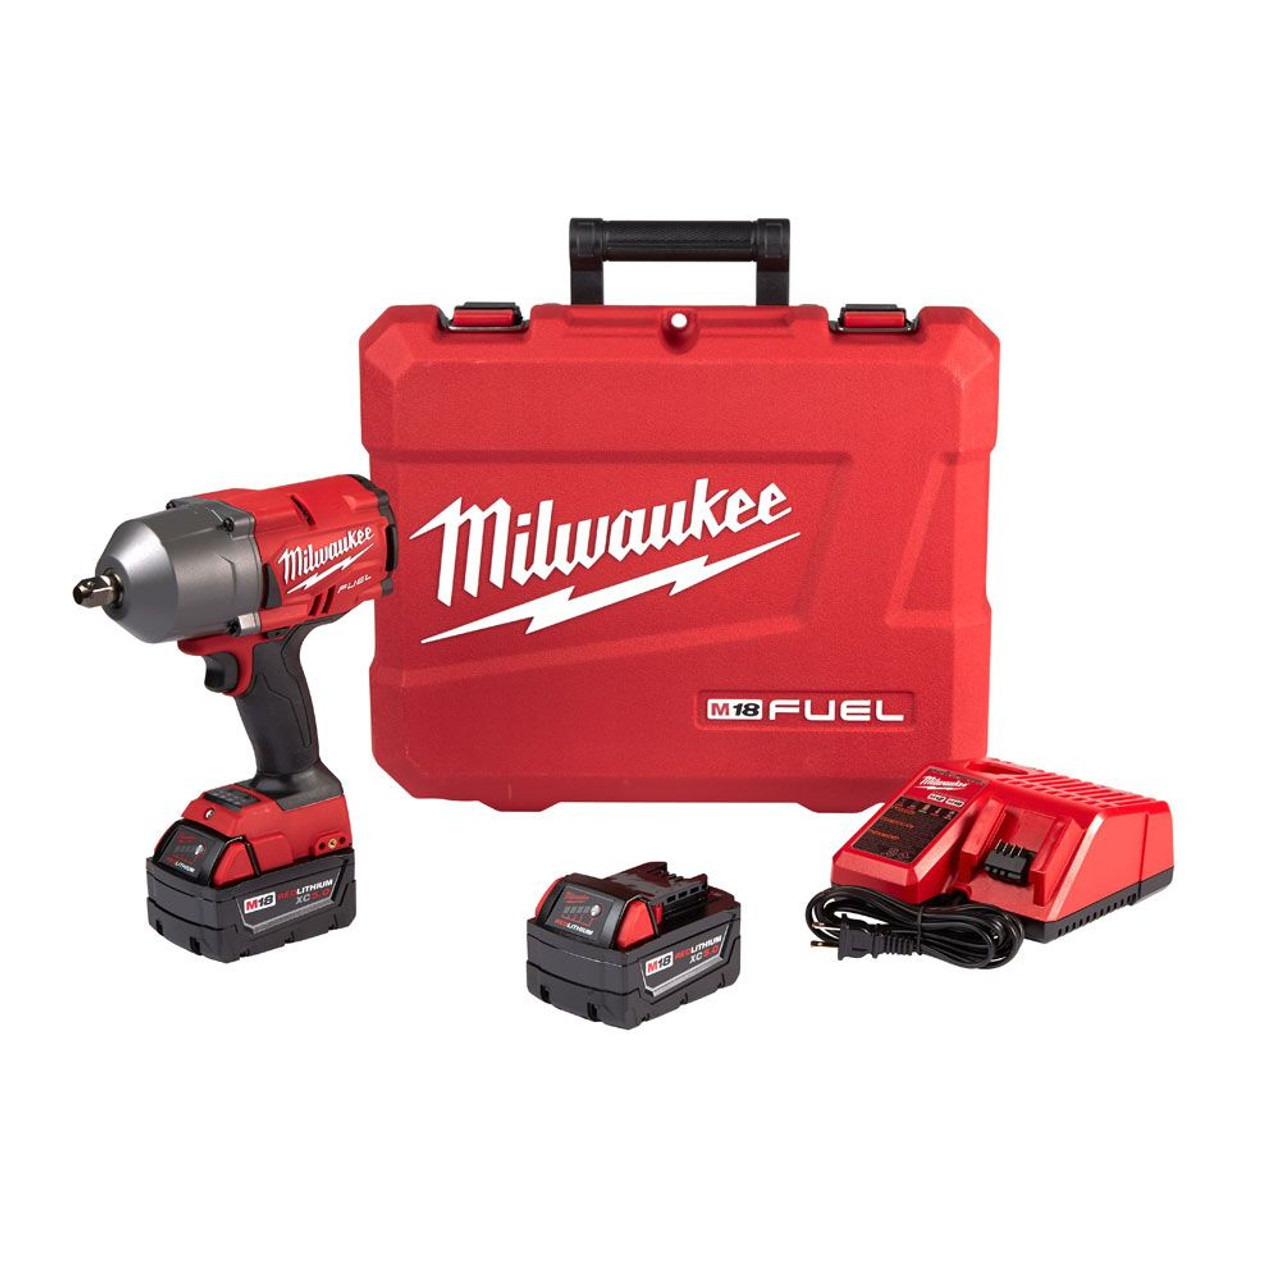 Milwaukee 2863 22 M18 FUEL ONE KEY High Torque Cordless Impact Wrench 1 2 Friction Ring Kit